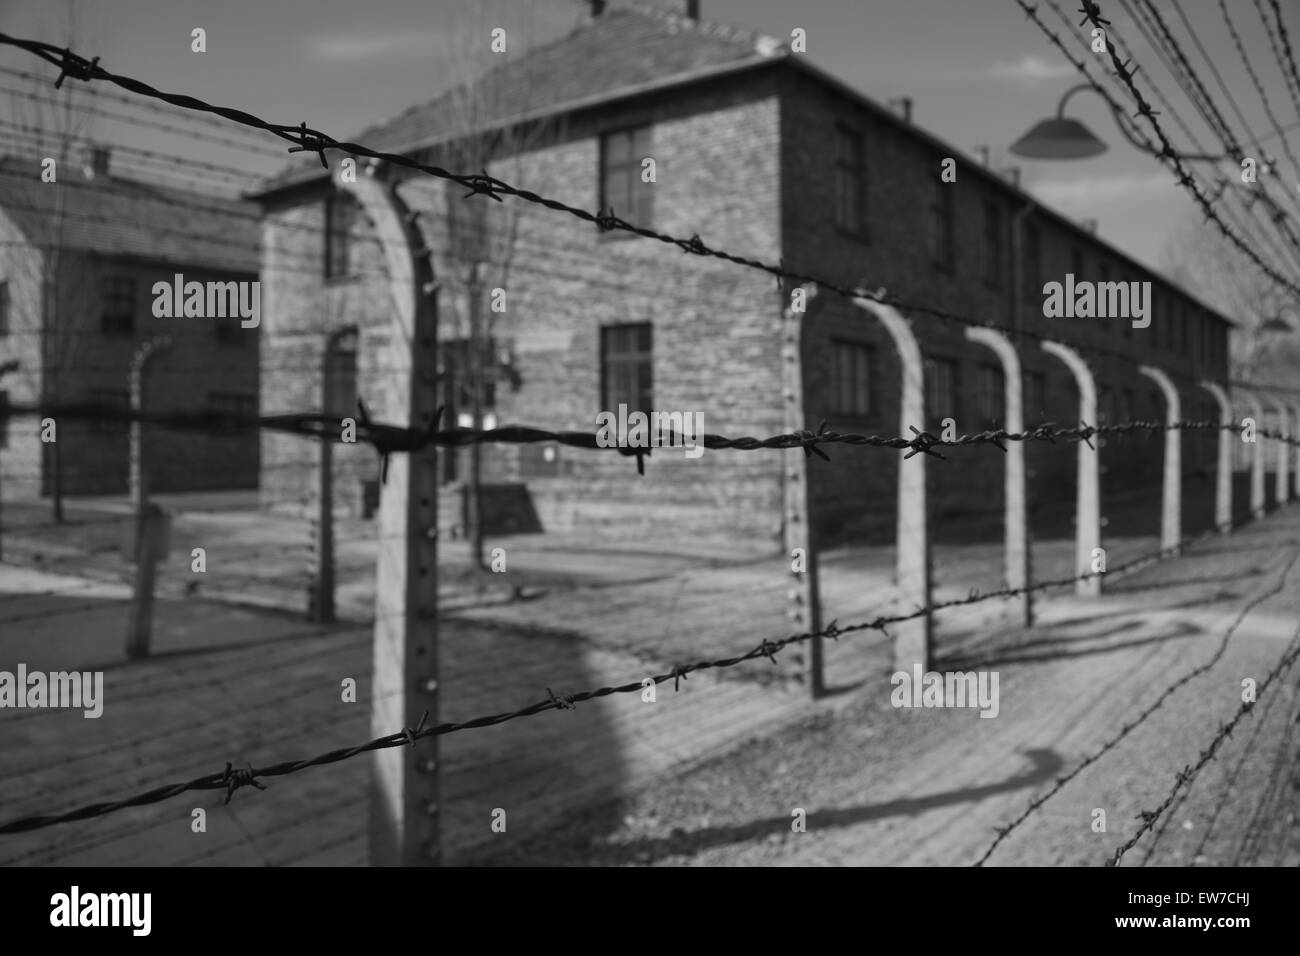 Auschwitz Birkenhau Atrocities Stock Photo